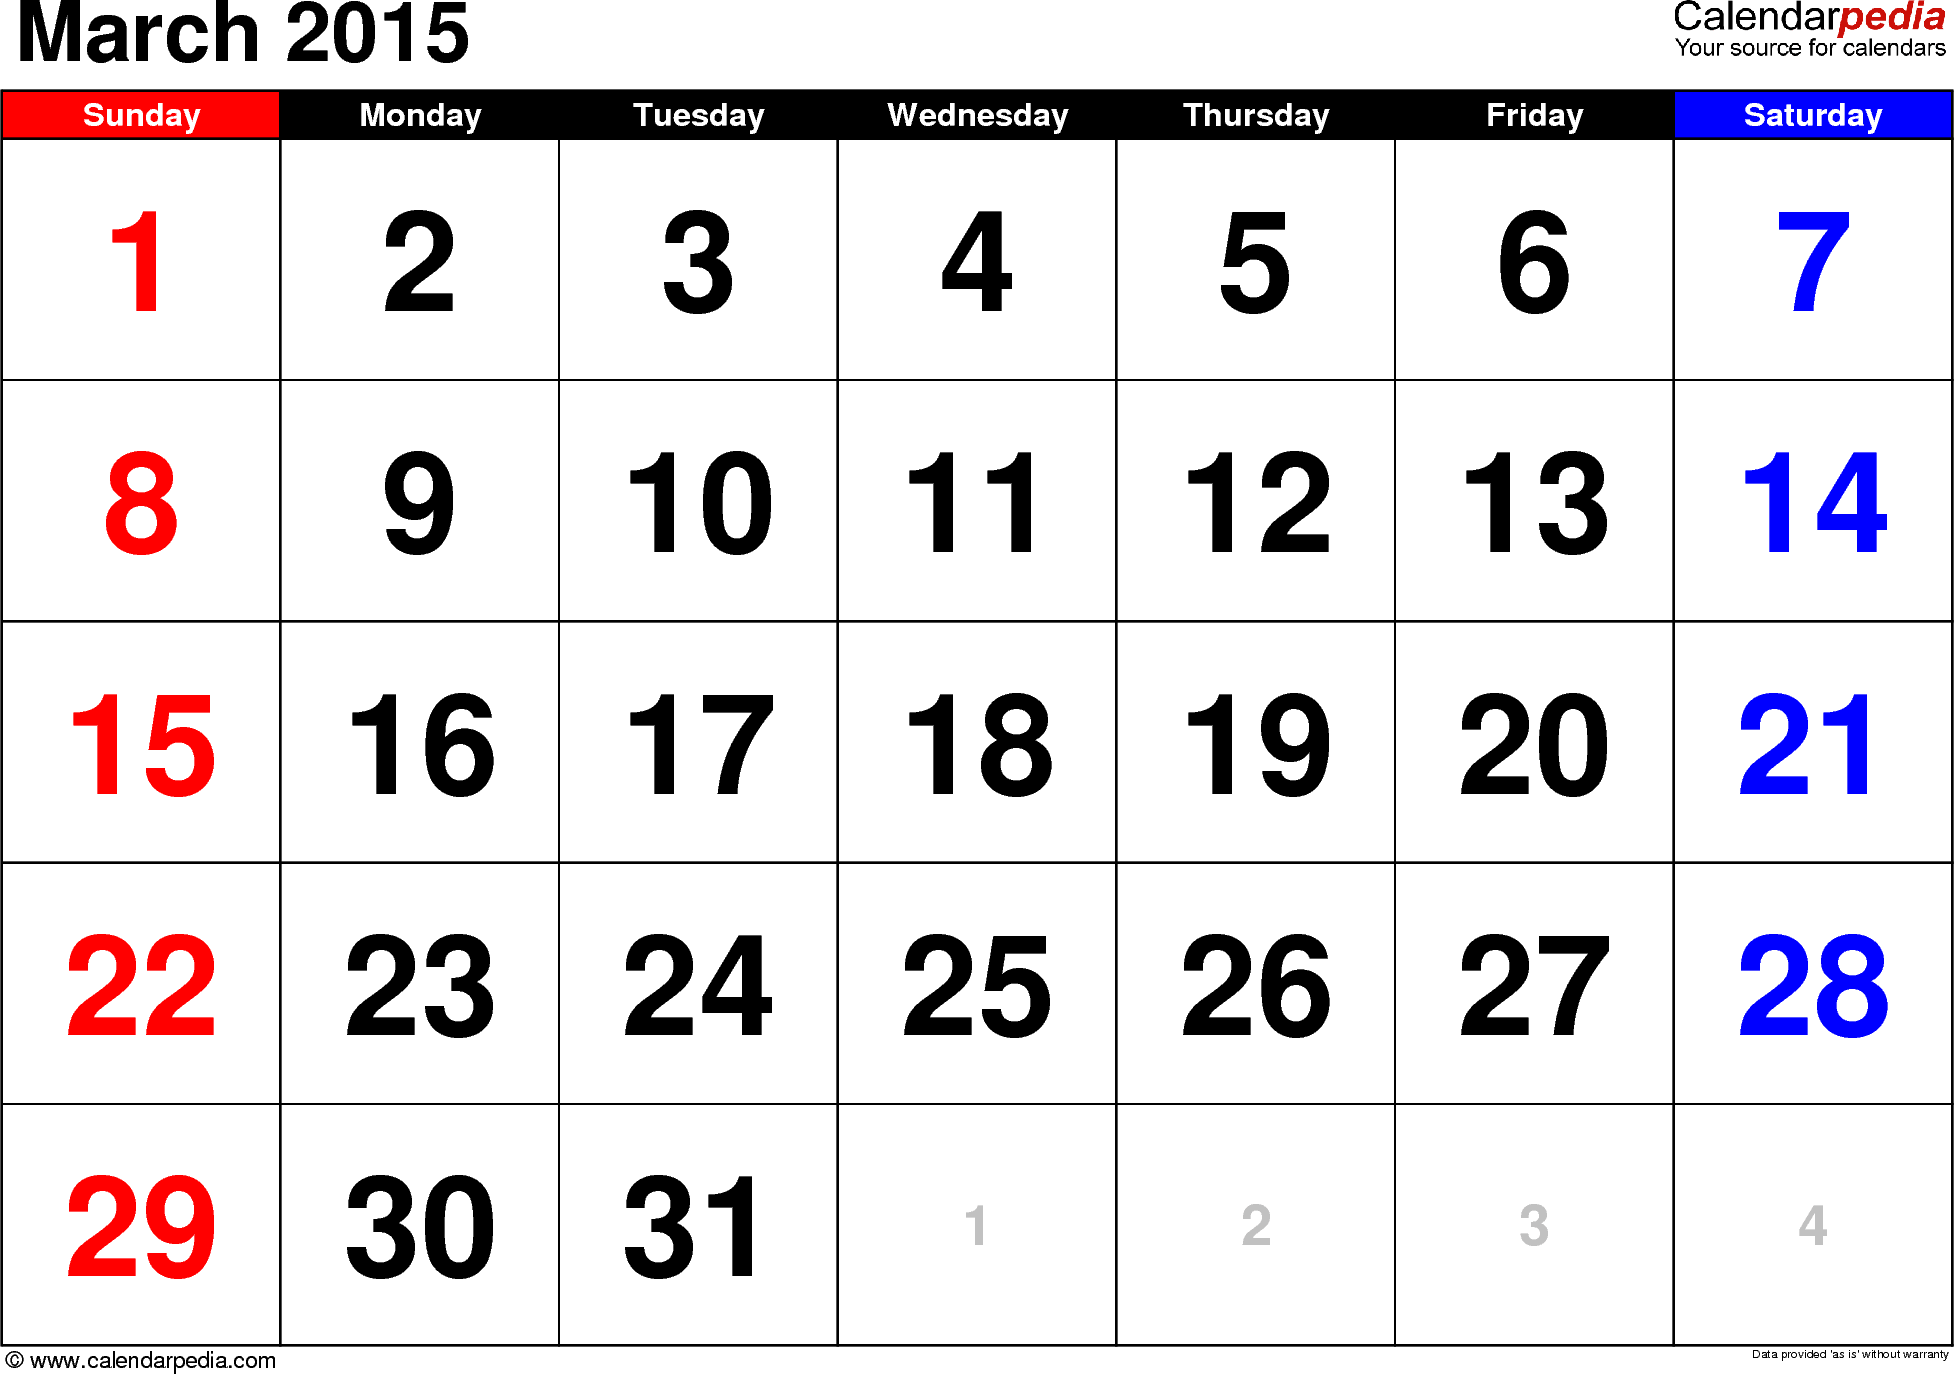 March 2015 calendar, landscape orientation, large numerals, available as printable templates for Word, Excel and PDF